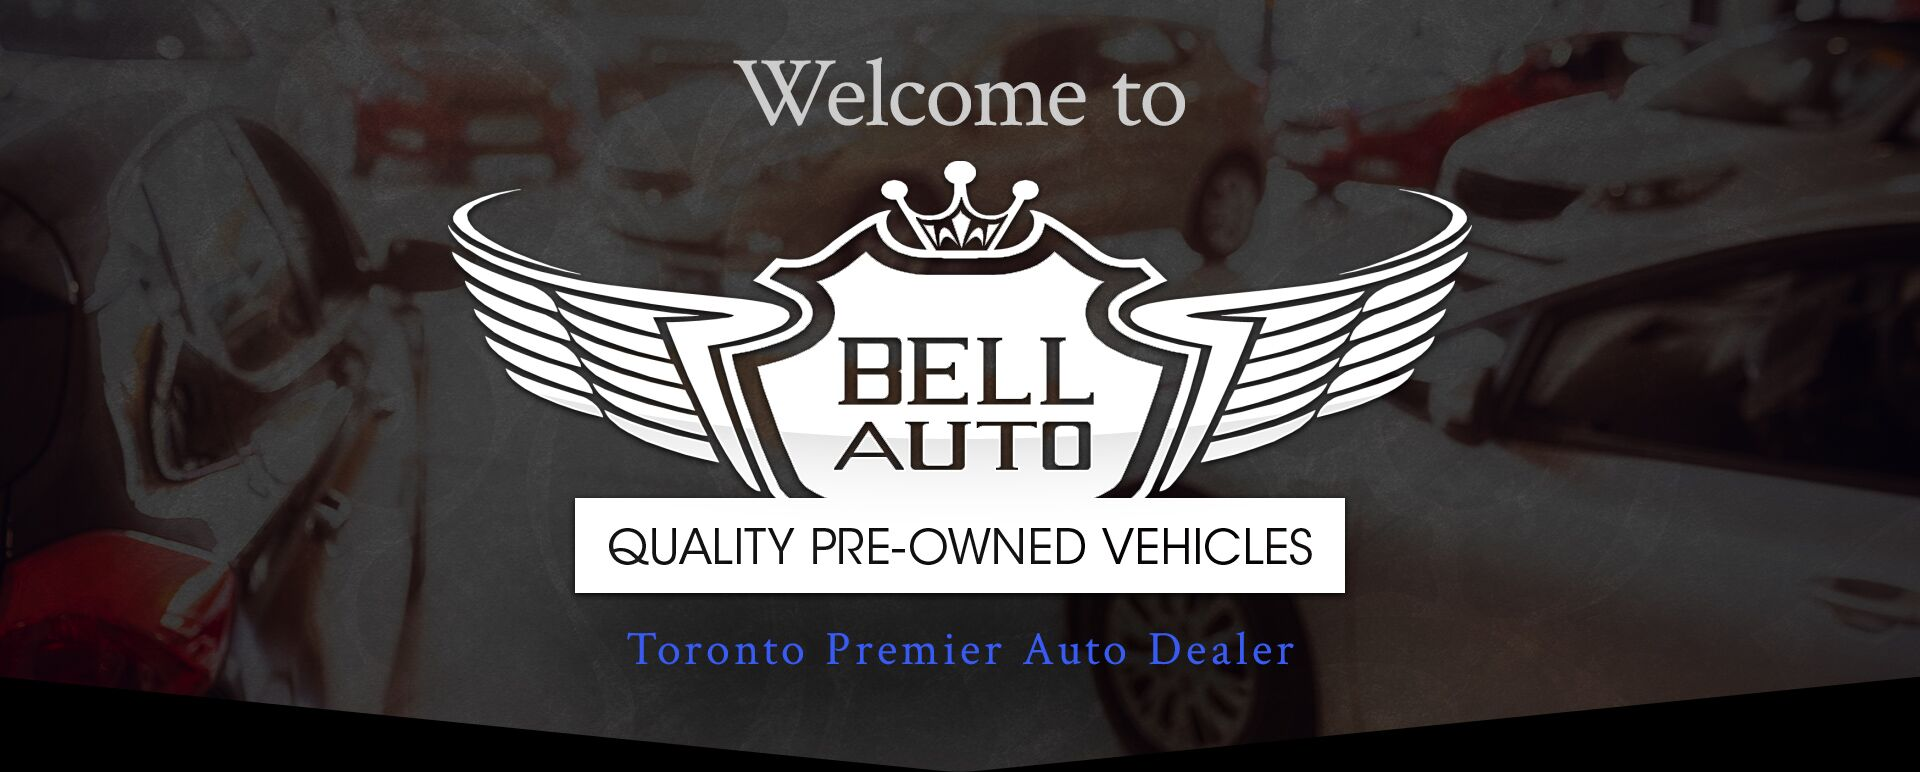 Welcome to Bell Auto